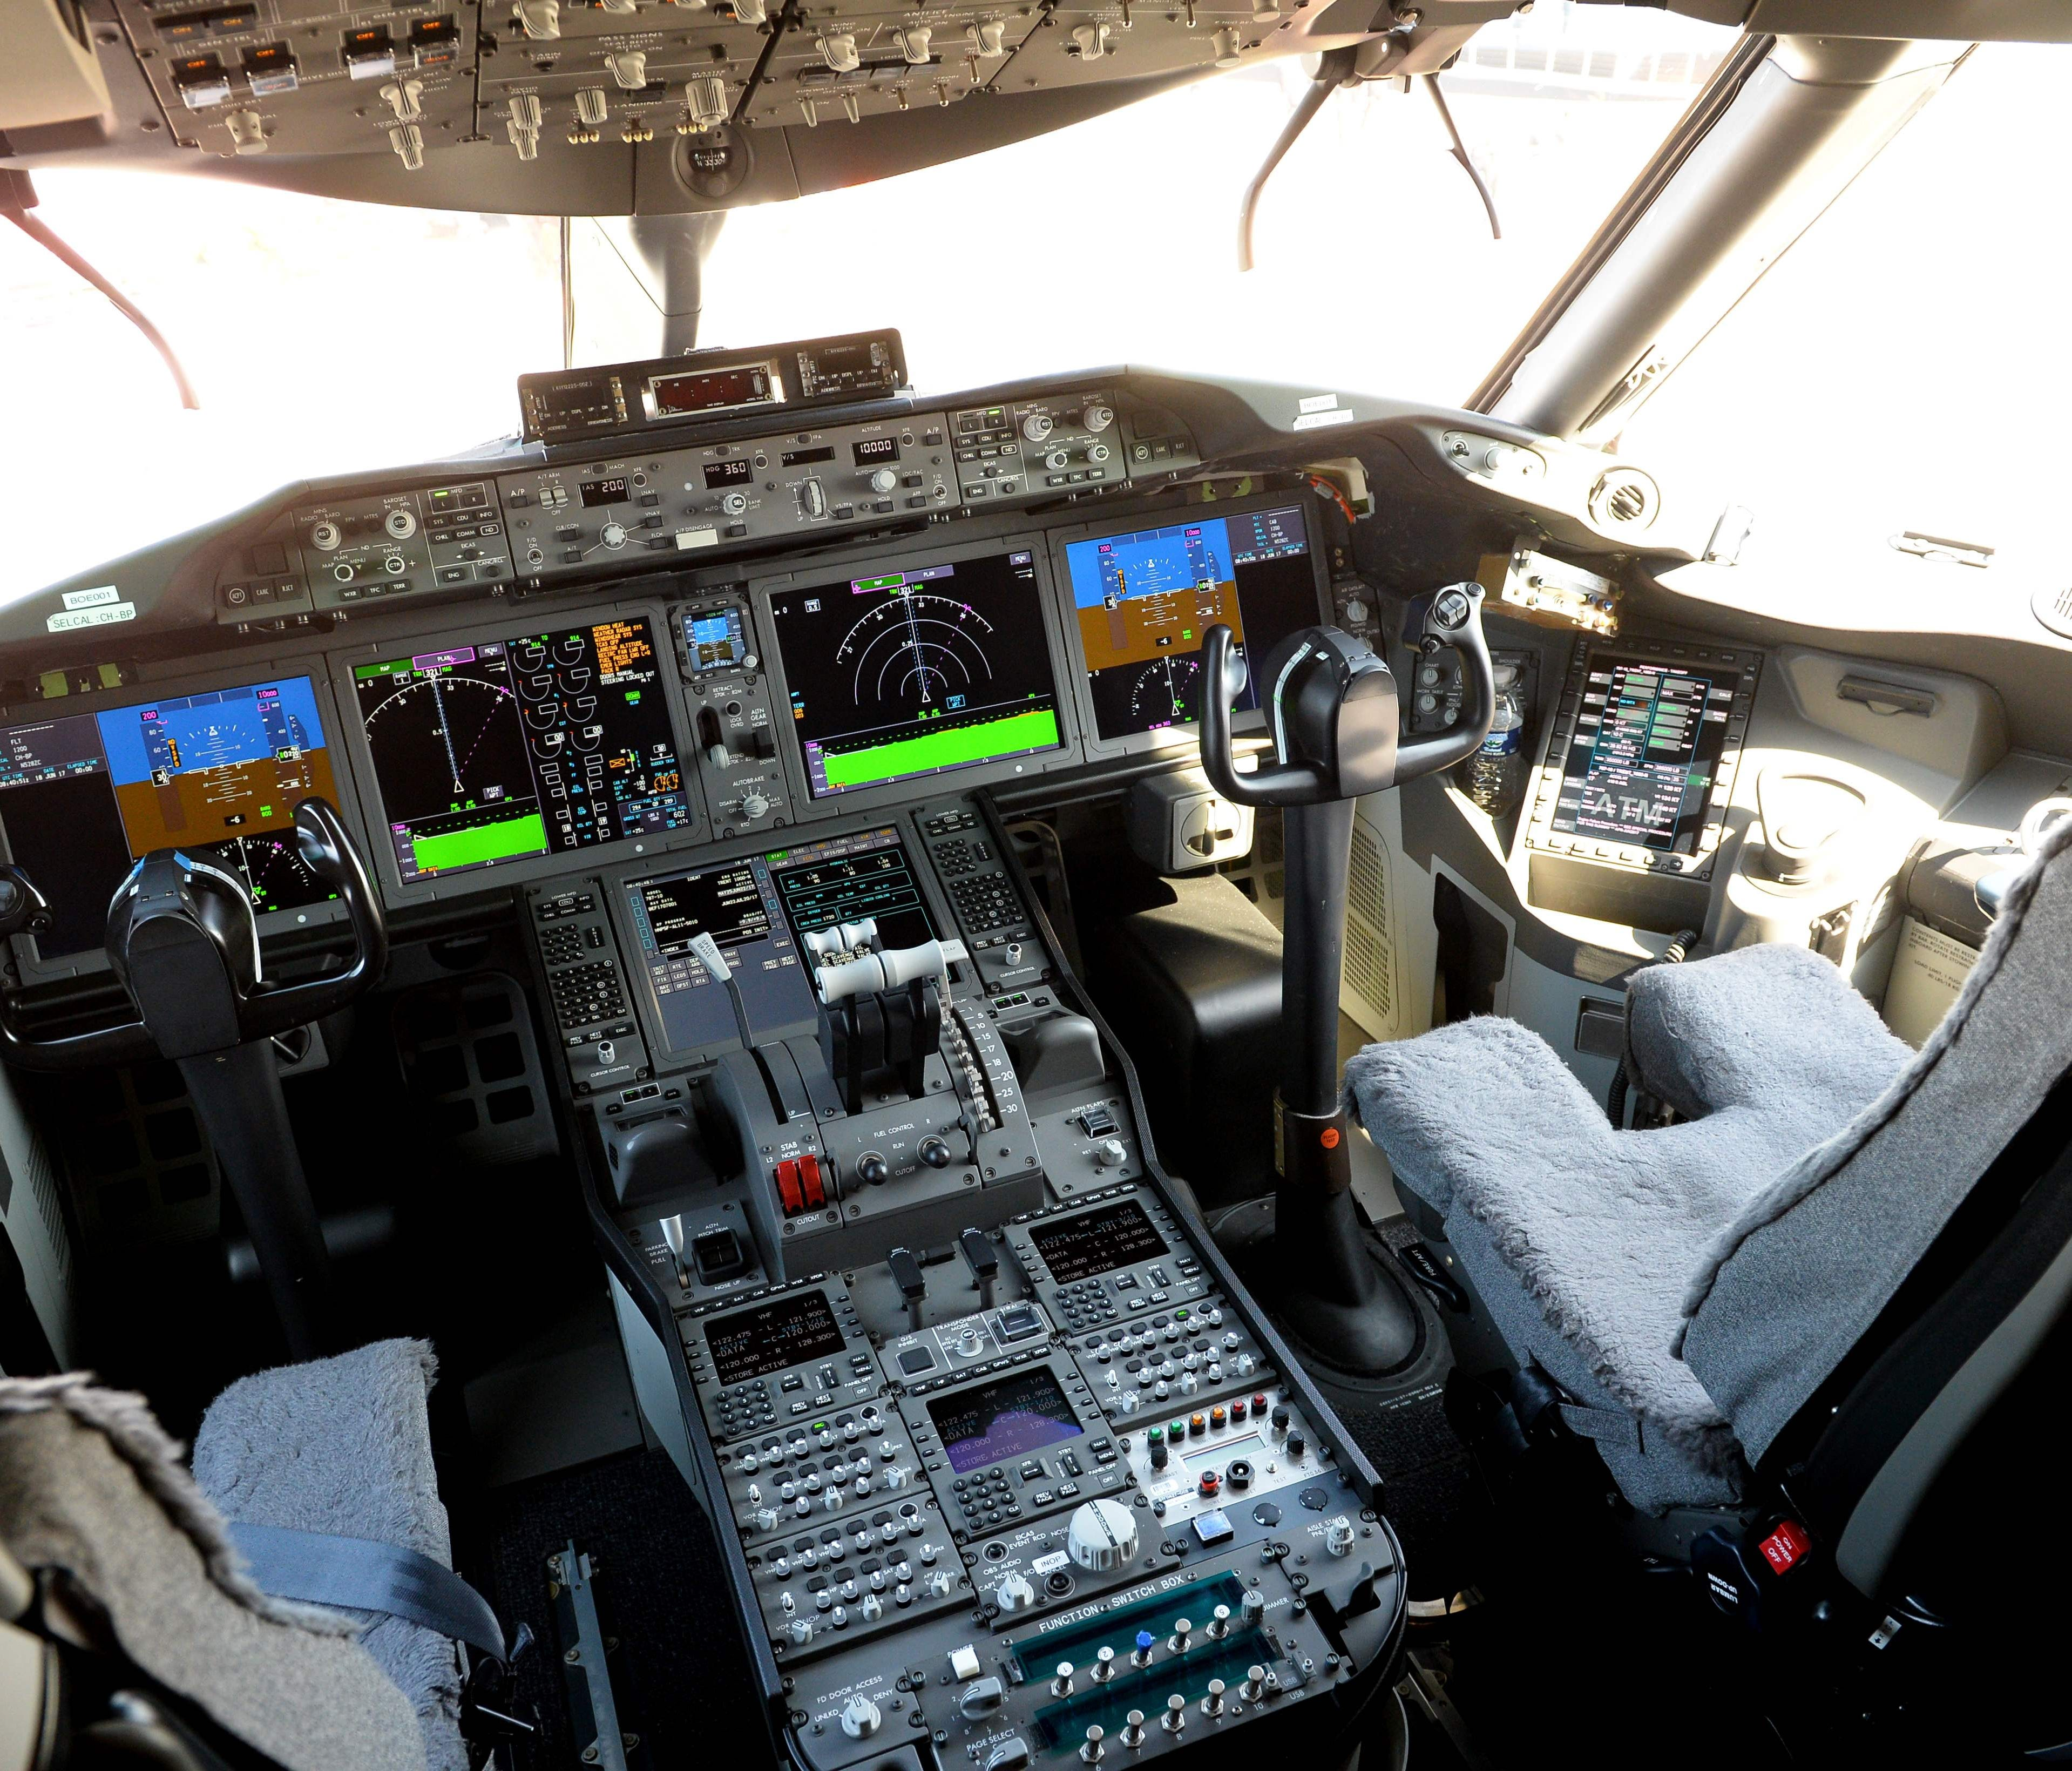 The cockpit of a Boeing 787-10 Dreamliner test plane presented on the tarmac of Le Bourget on June 18, 2017, on the eve of the opening of the International Paris Air Show.